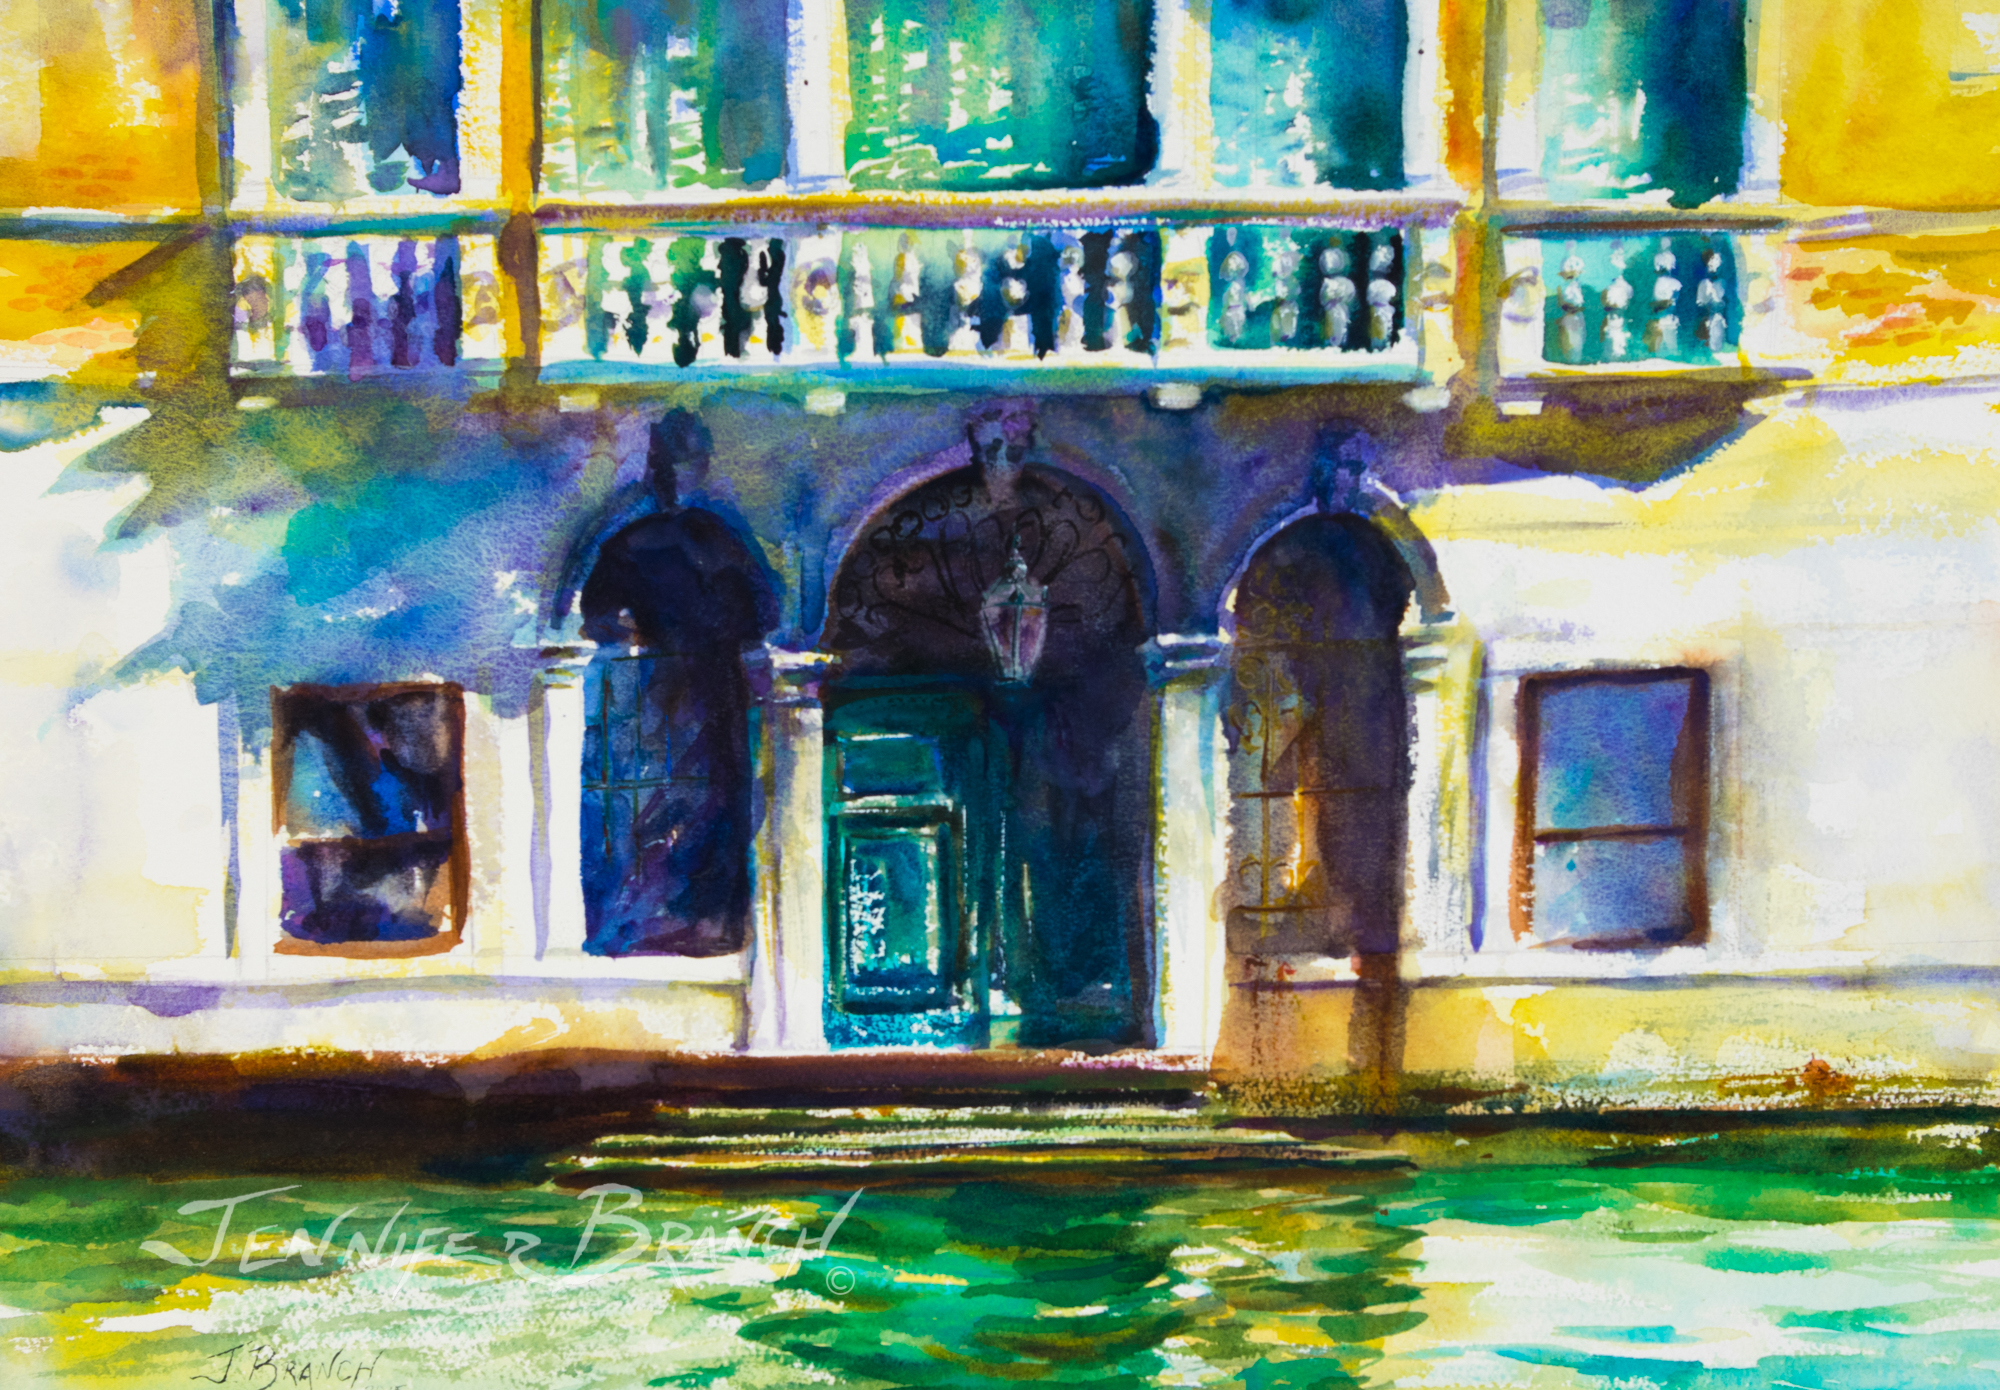 Mocenigo Ca'Vecchia Watercolor Painting by Jennifer Branch